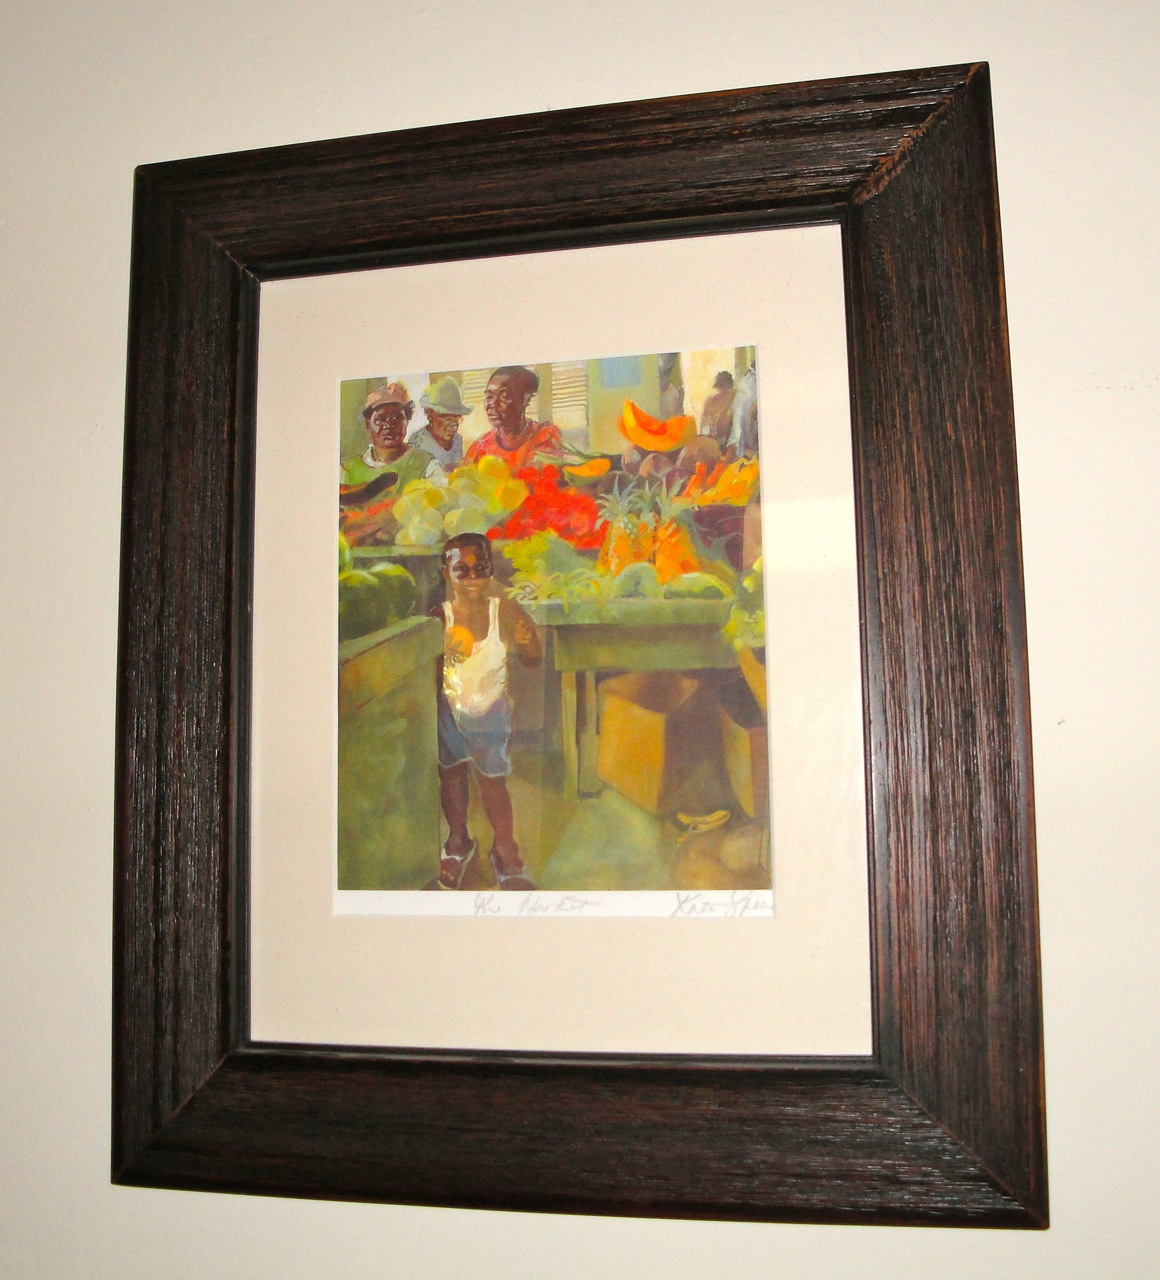 Cheap Custom Frames Online Discount Art Framing At Michaels Economy Of Style